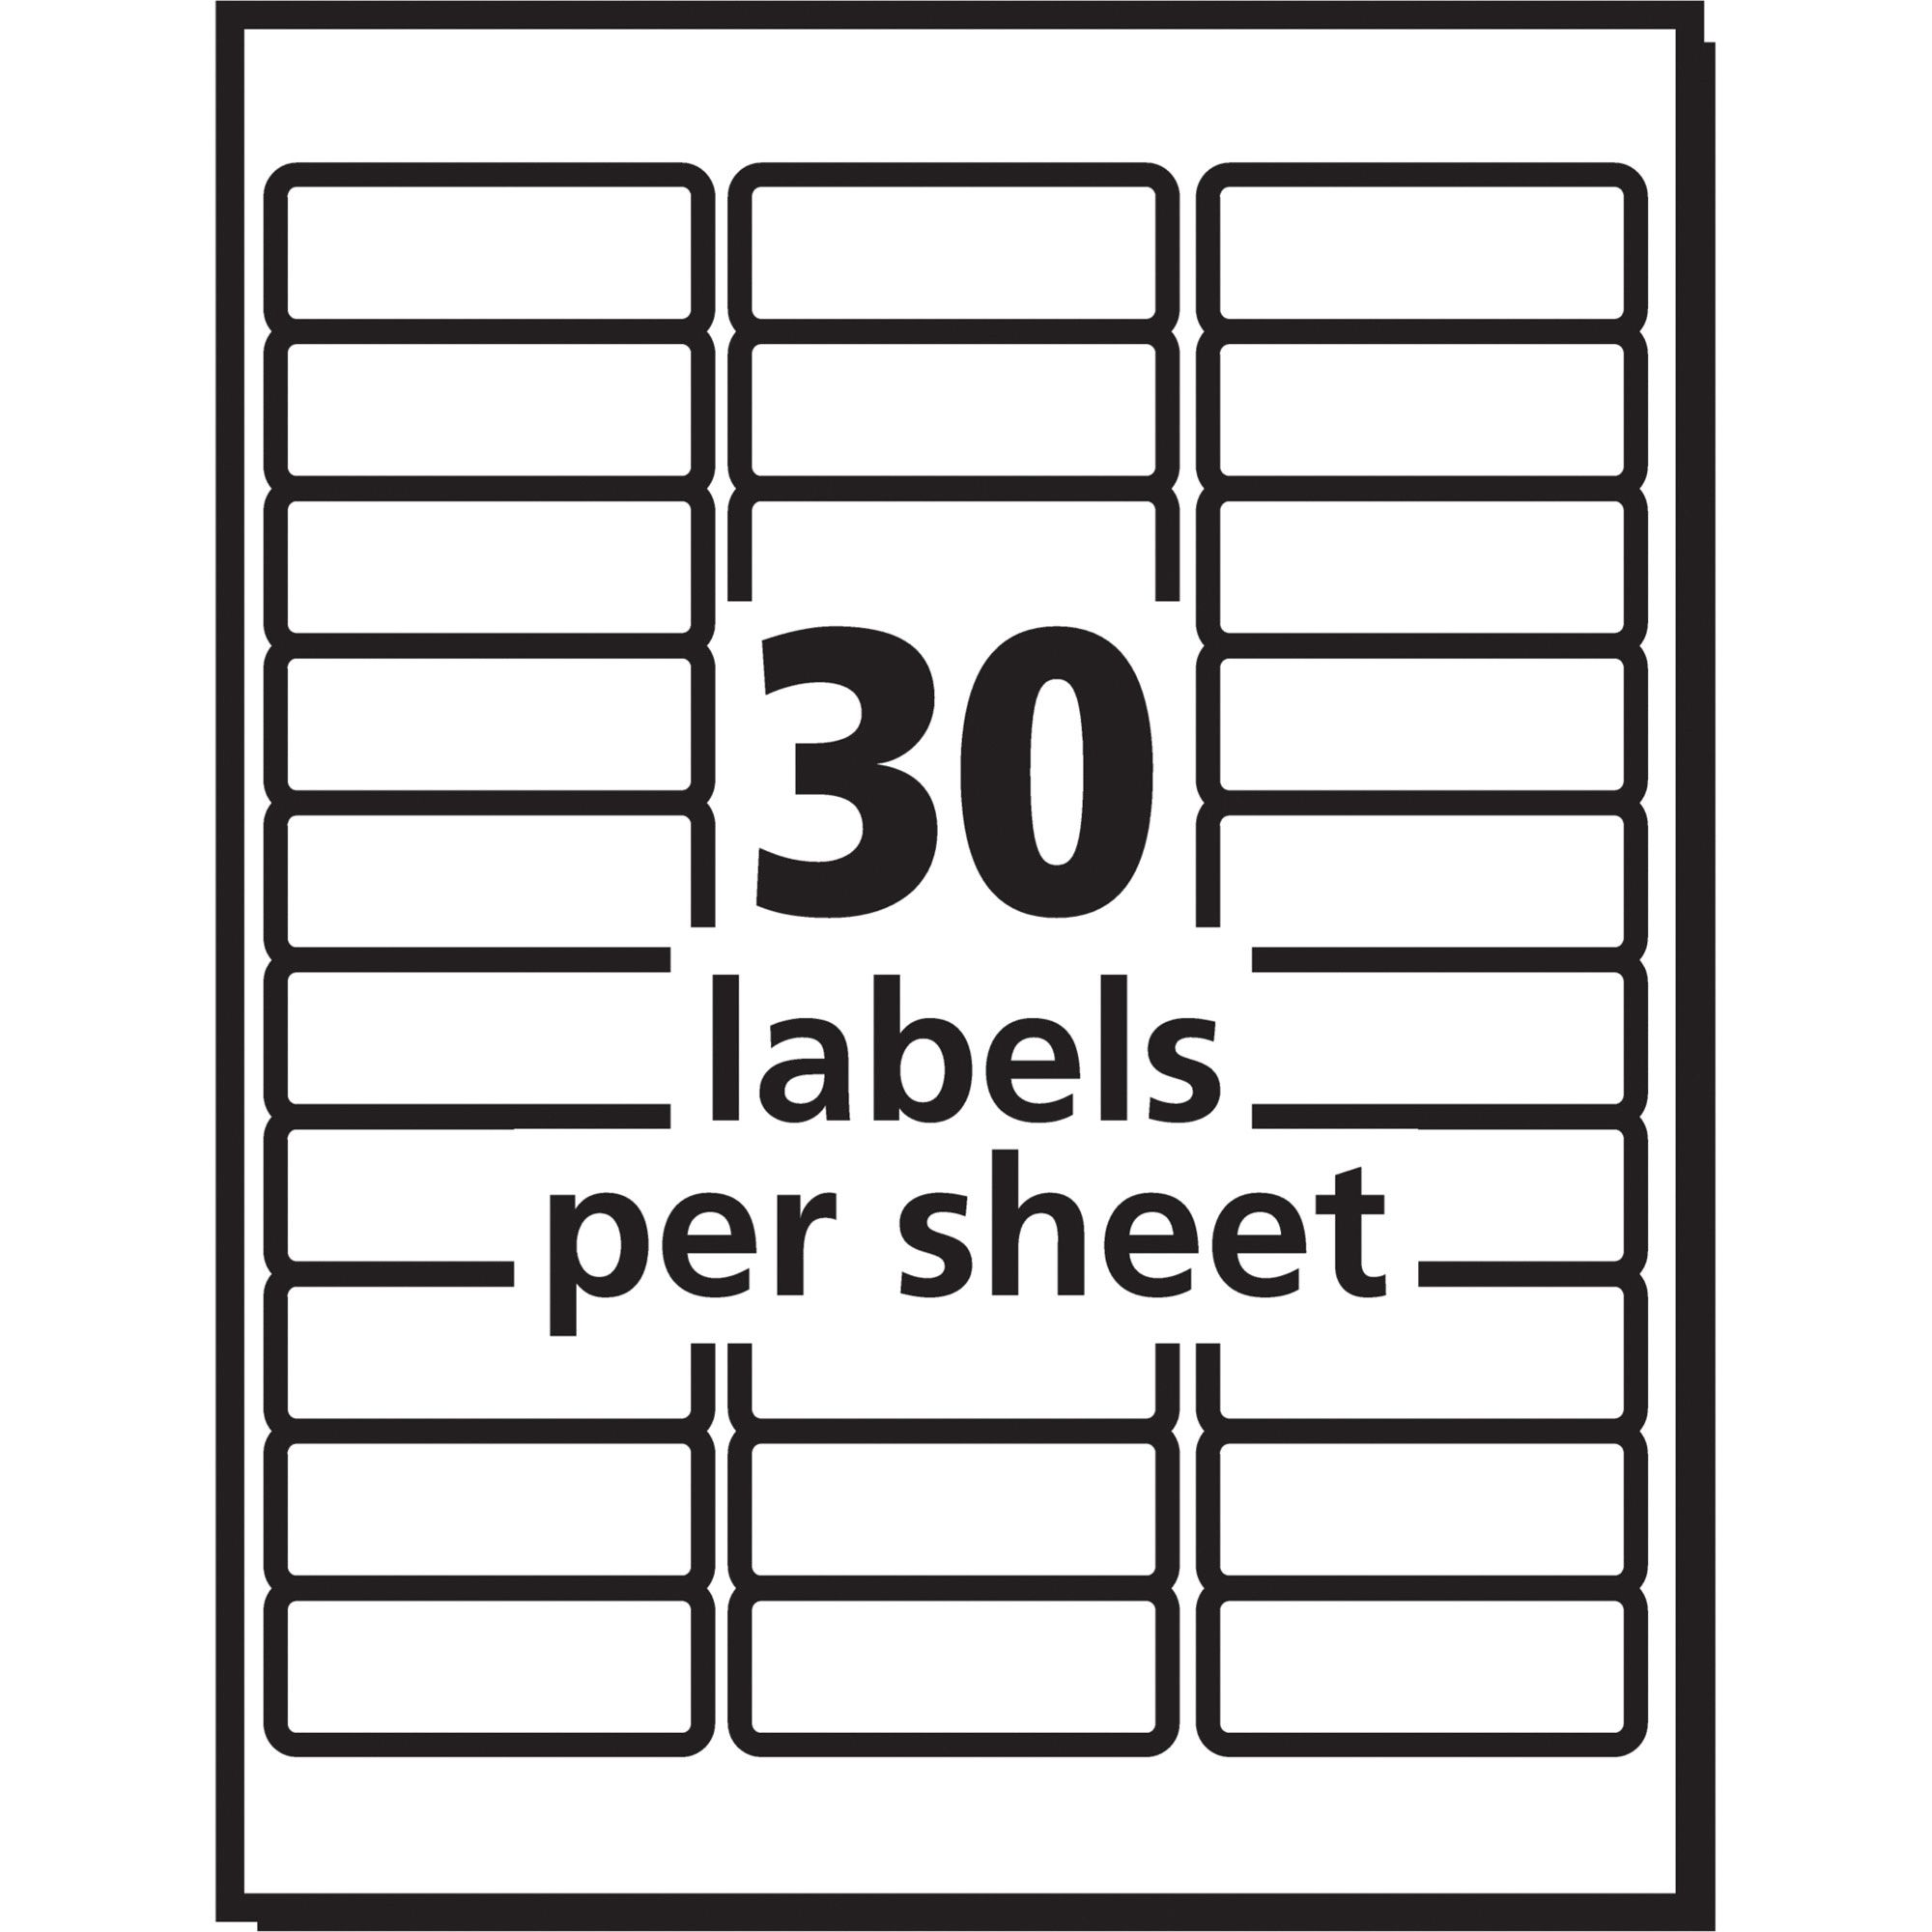 006 Excellent Addres Label Template Free Sample  Cute Shipping Return WordFull